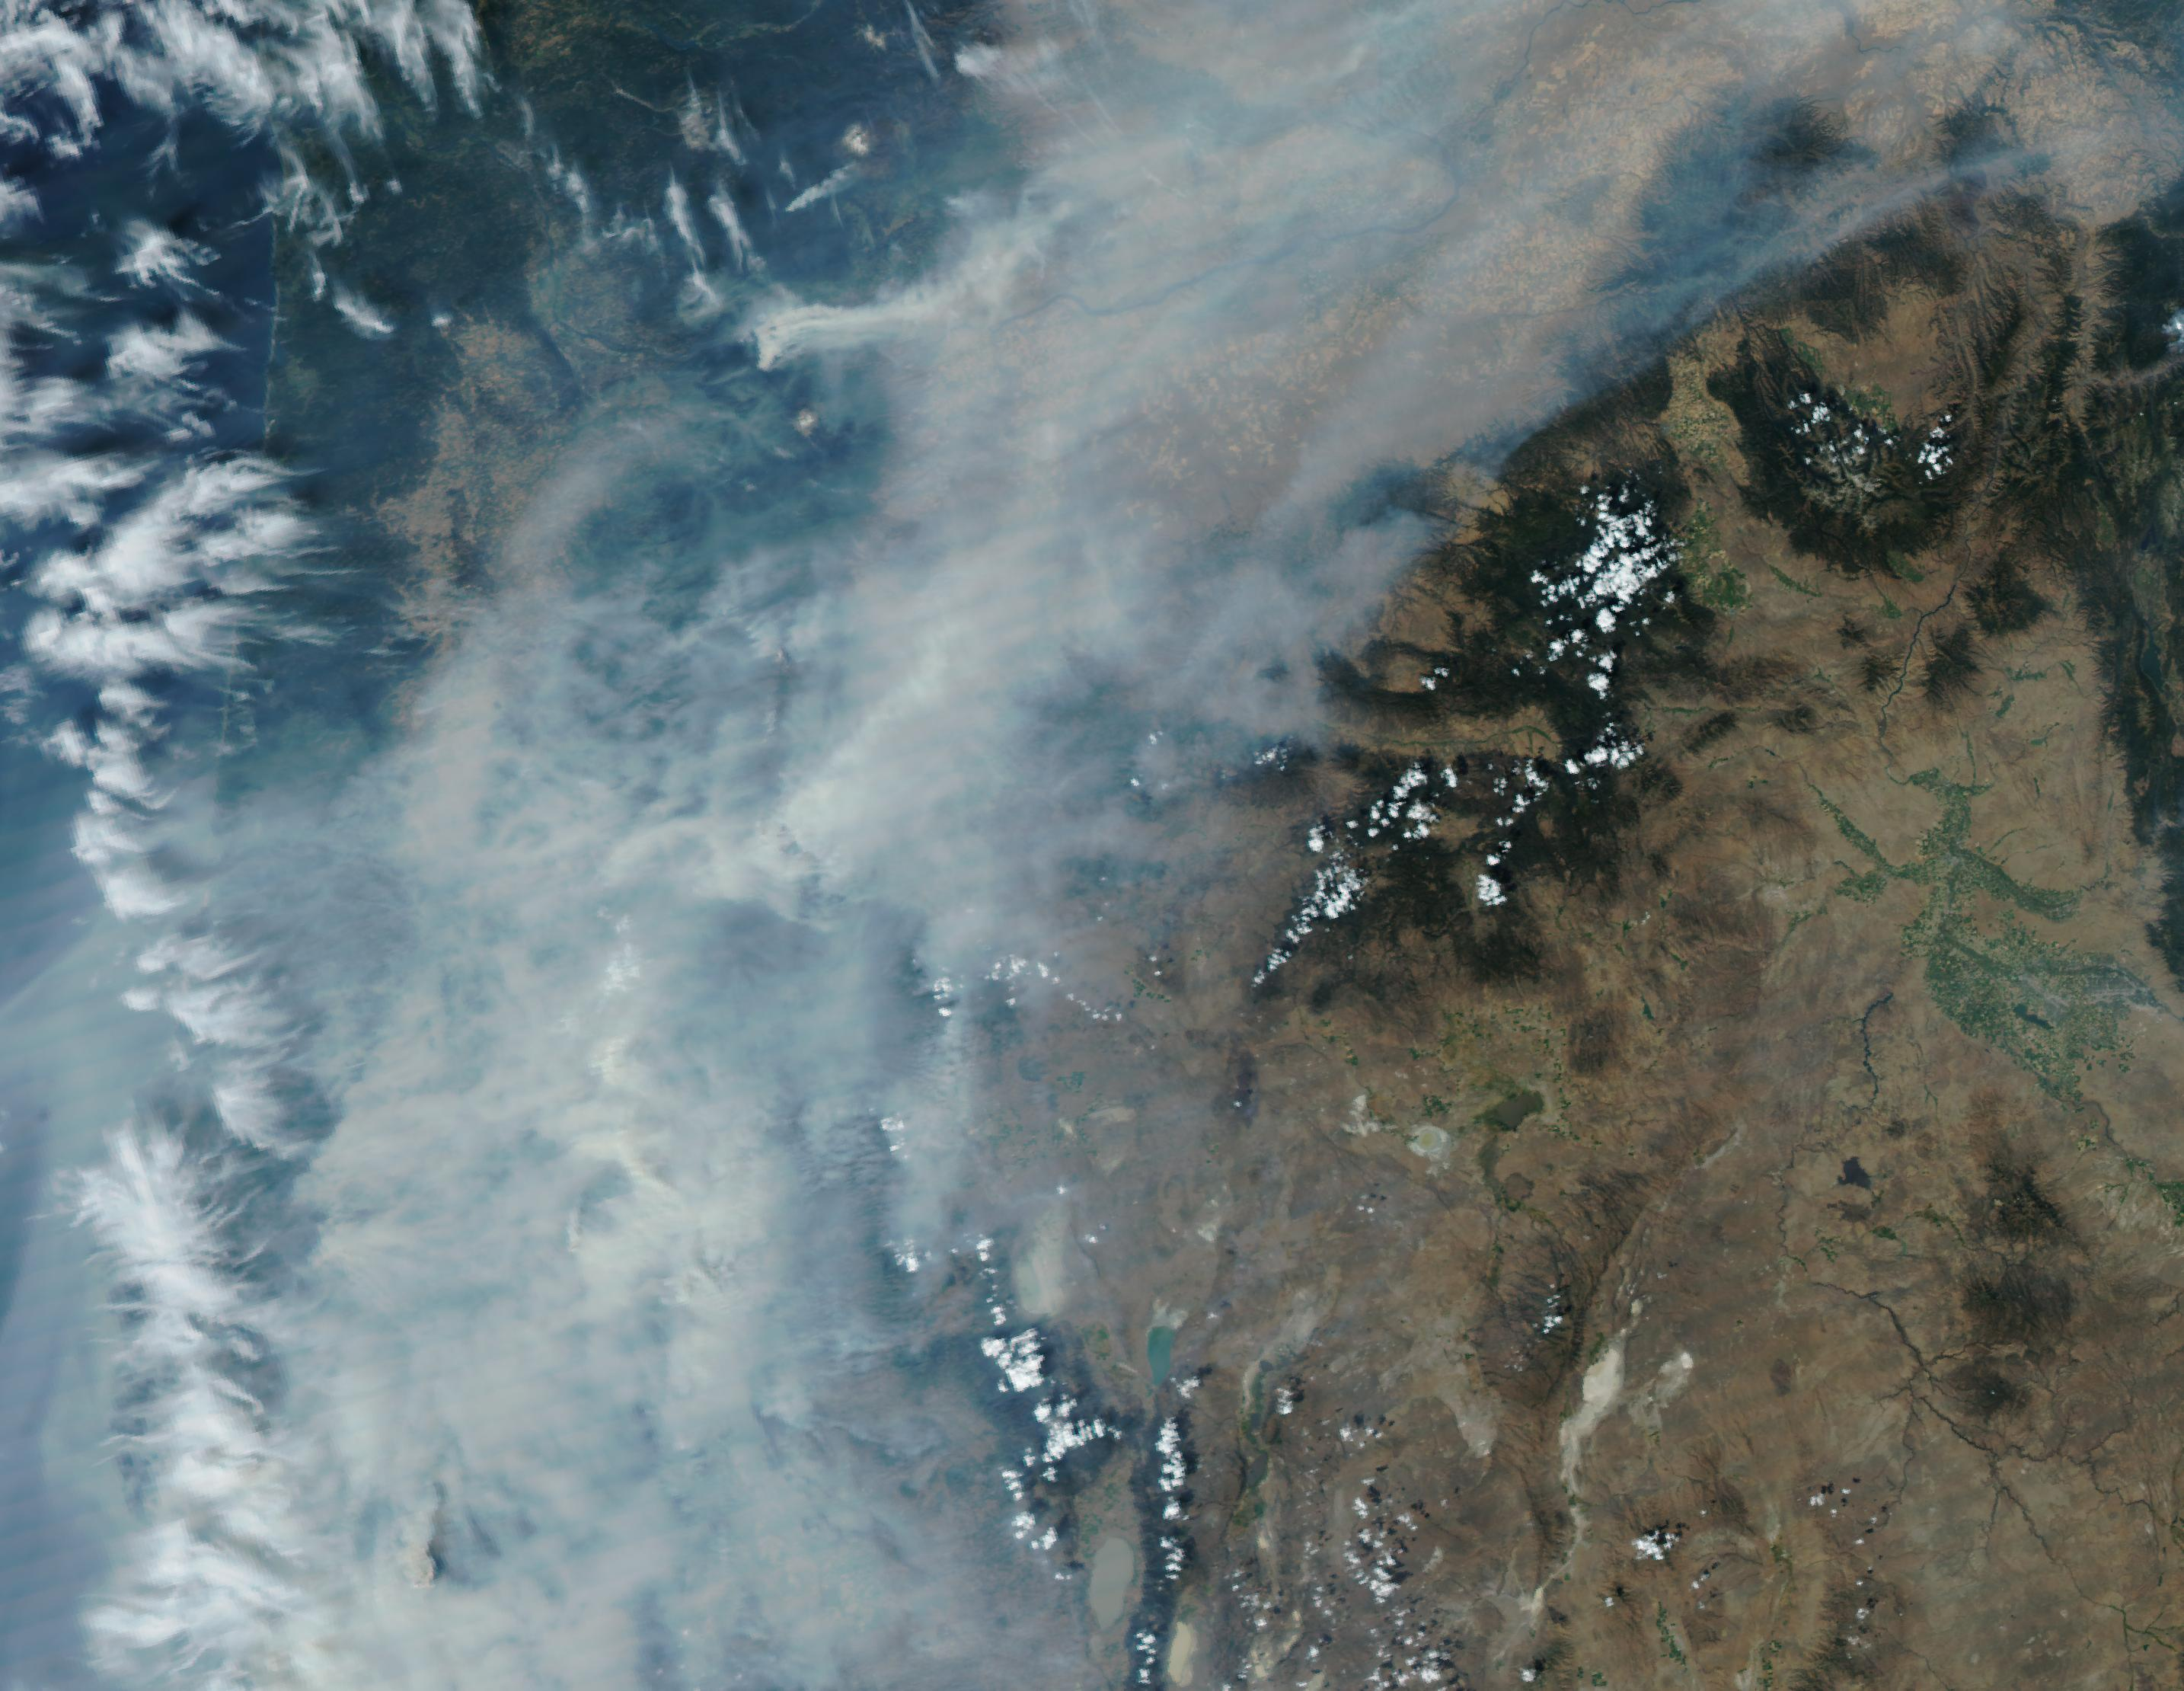 NASA satellite image shows Oregon on September 3, 2017. Air quality in Western Oregon ranges into the Unhealthy and even Hazardous categories over the Labor Day weekend thanks to smoke from forest fires.